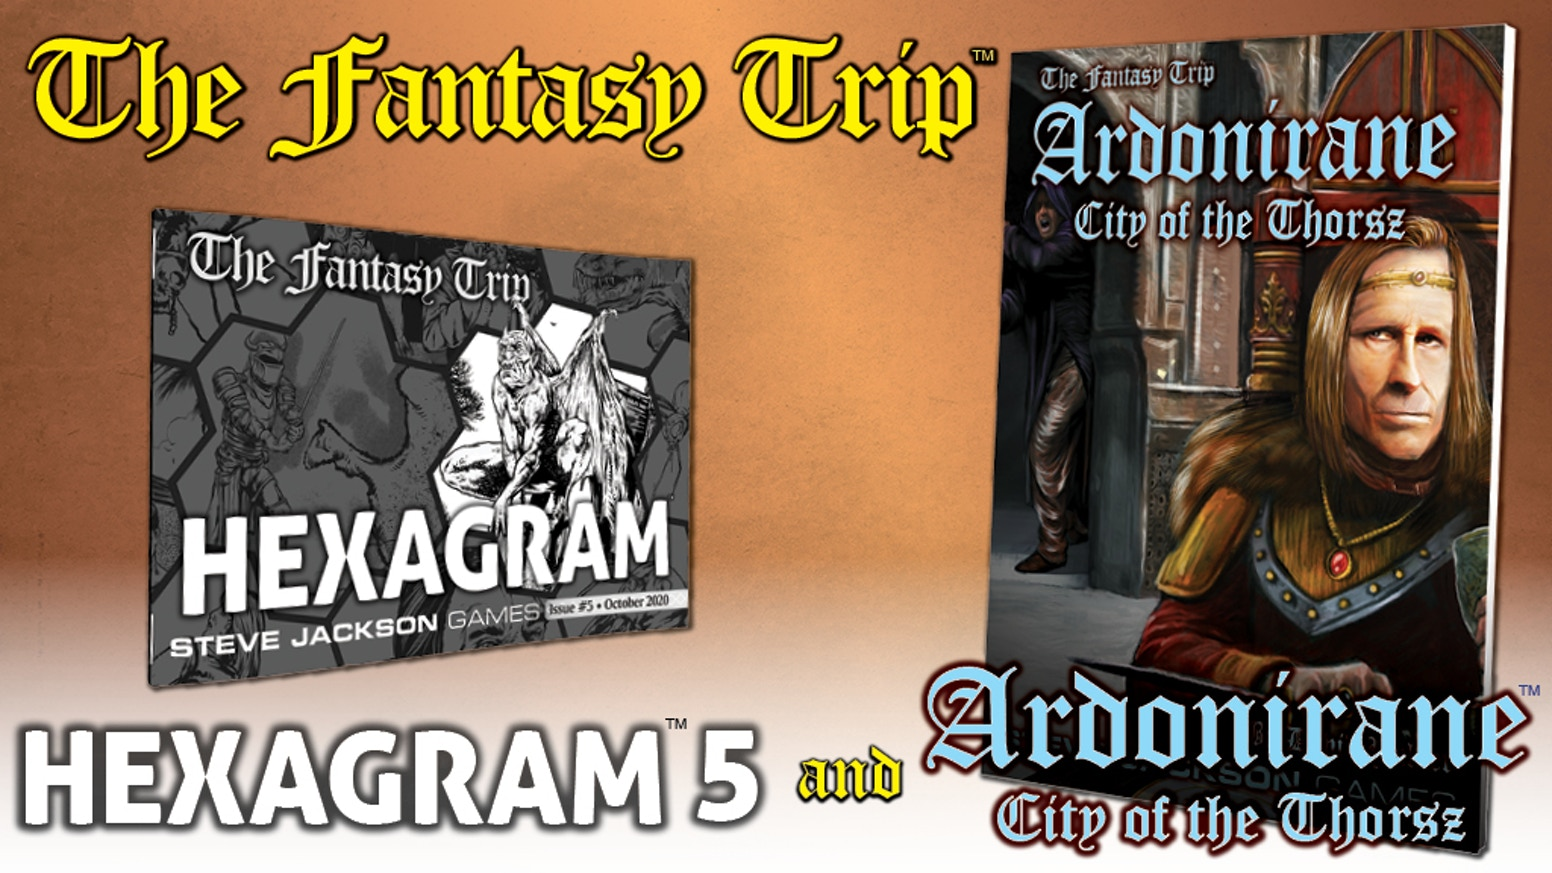 The fifth issue of the Hexagram series and a new city guide for use with The Fantasy Trip roleplaying game.